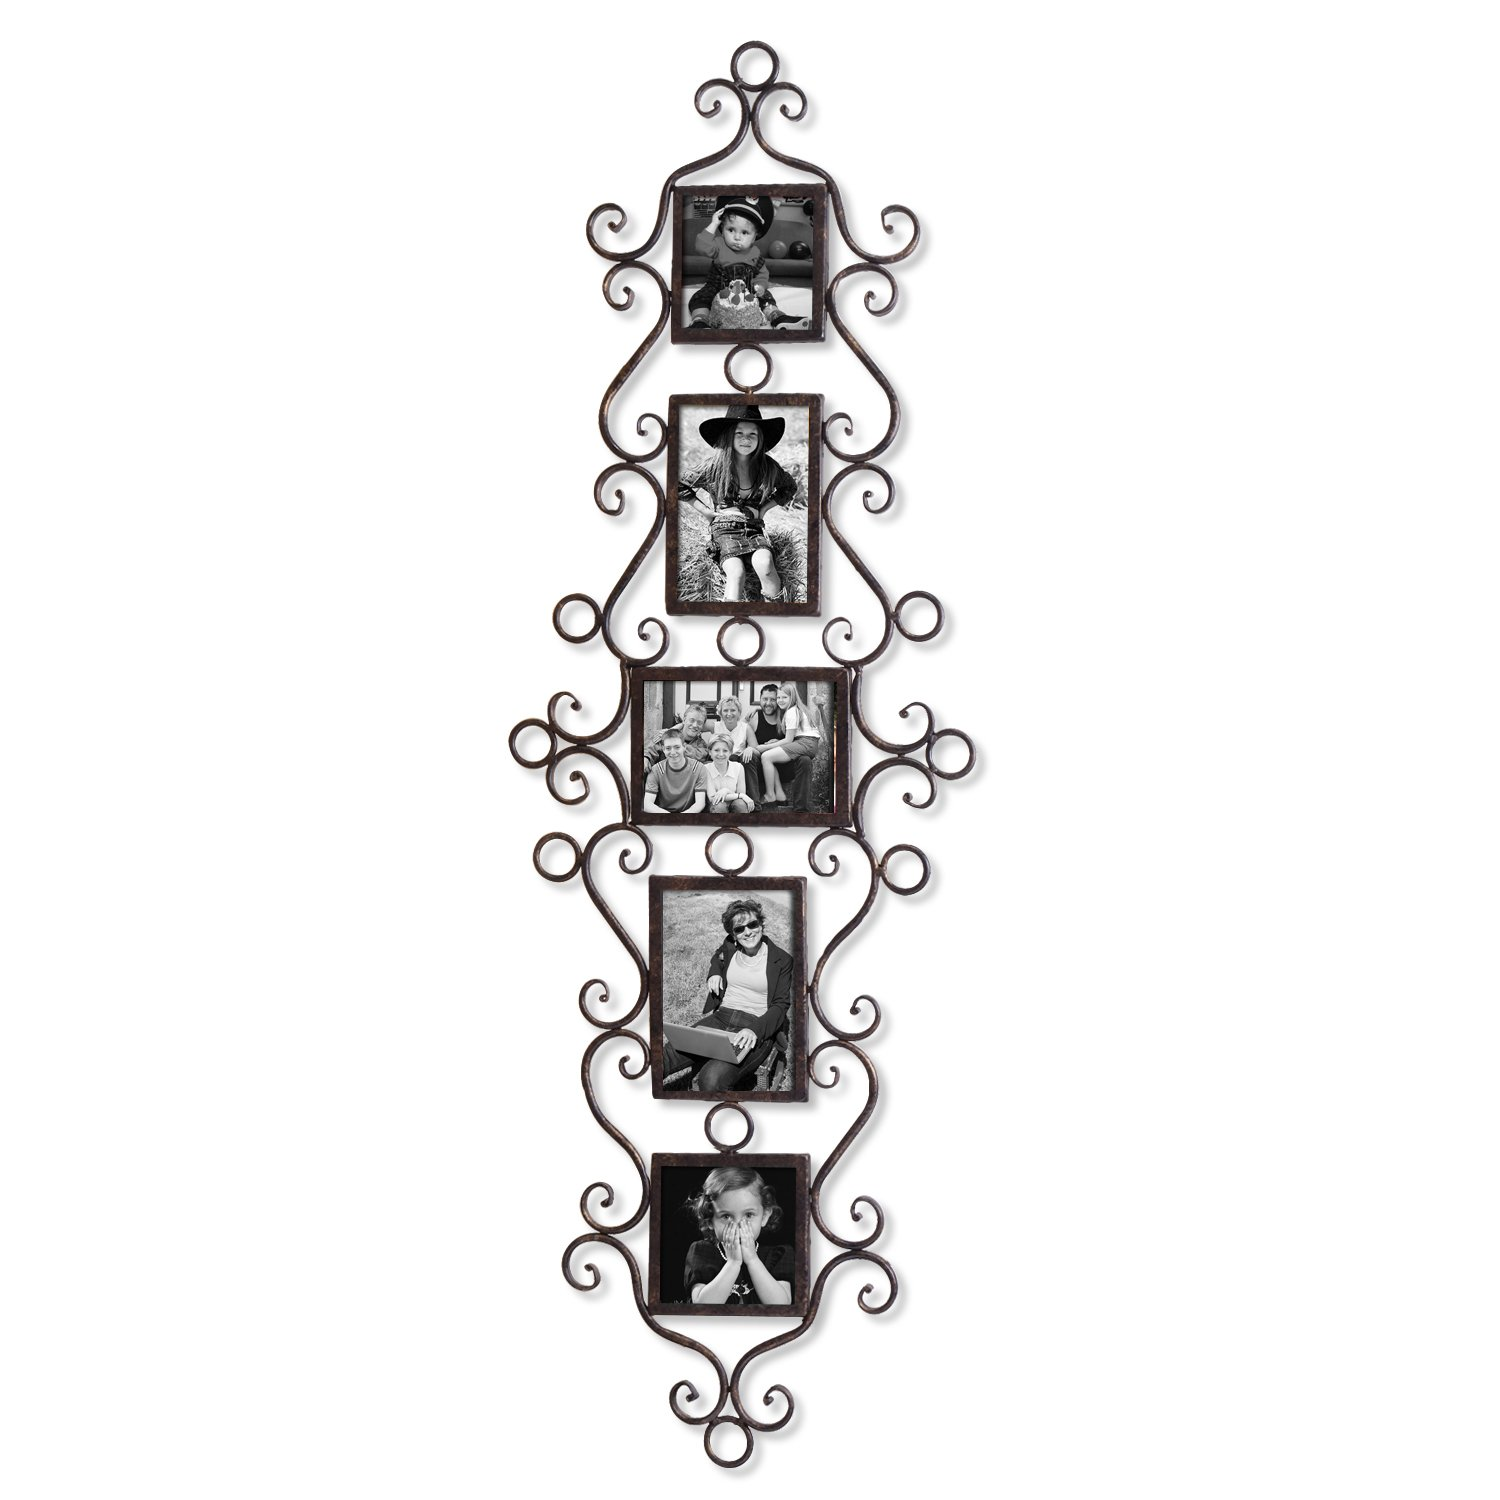 Adeco 5 Openings Decorative Black Metal Filigree Wall Hanging Collage Family Picture Photo Frame - Made to Display Three 4x6 and Two 4x4 Photos by Adeco